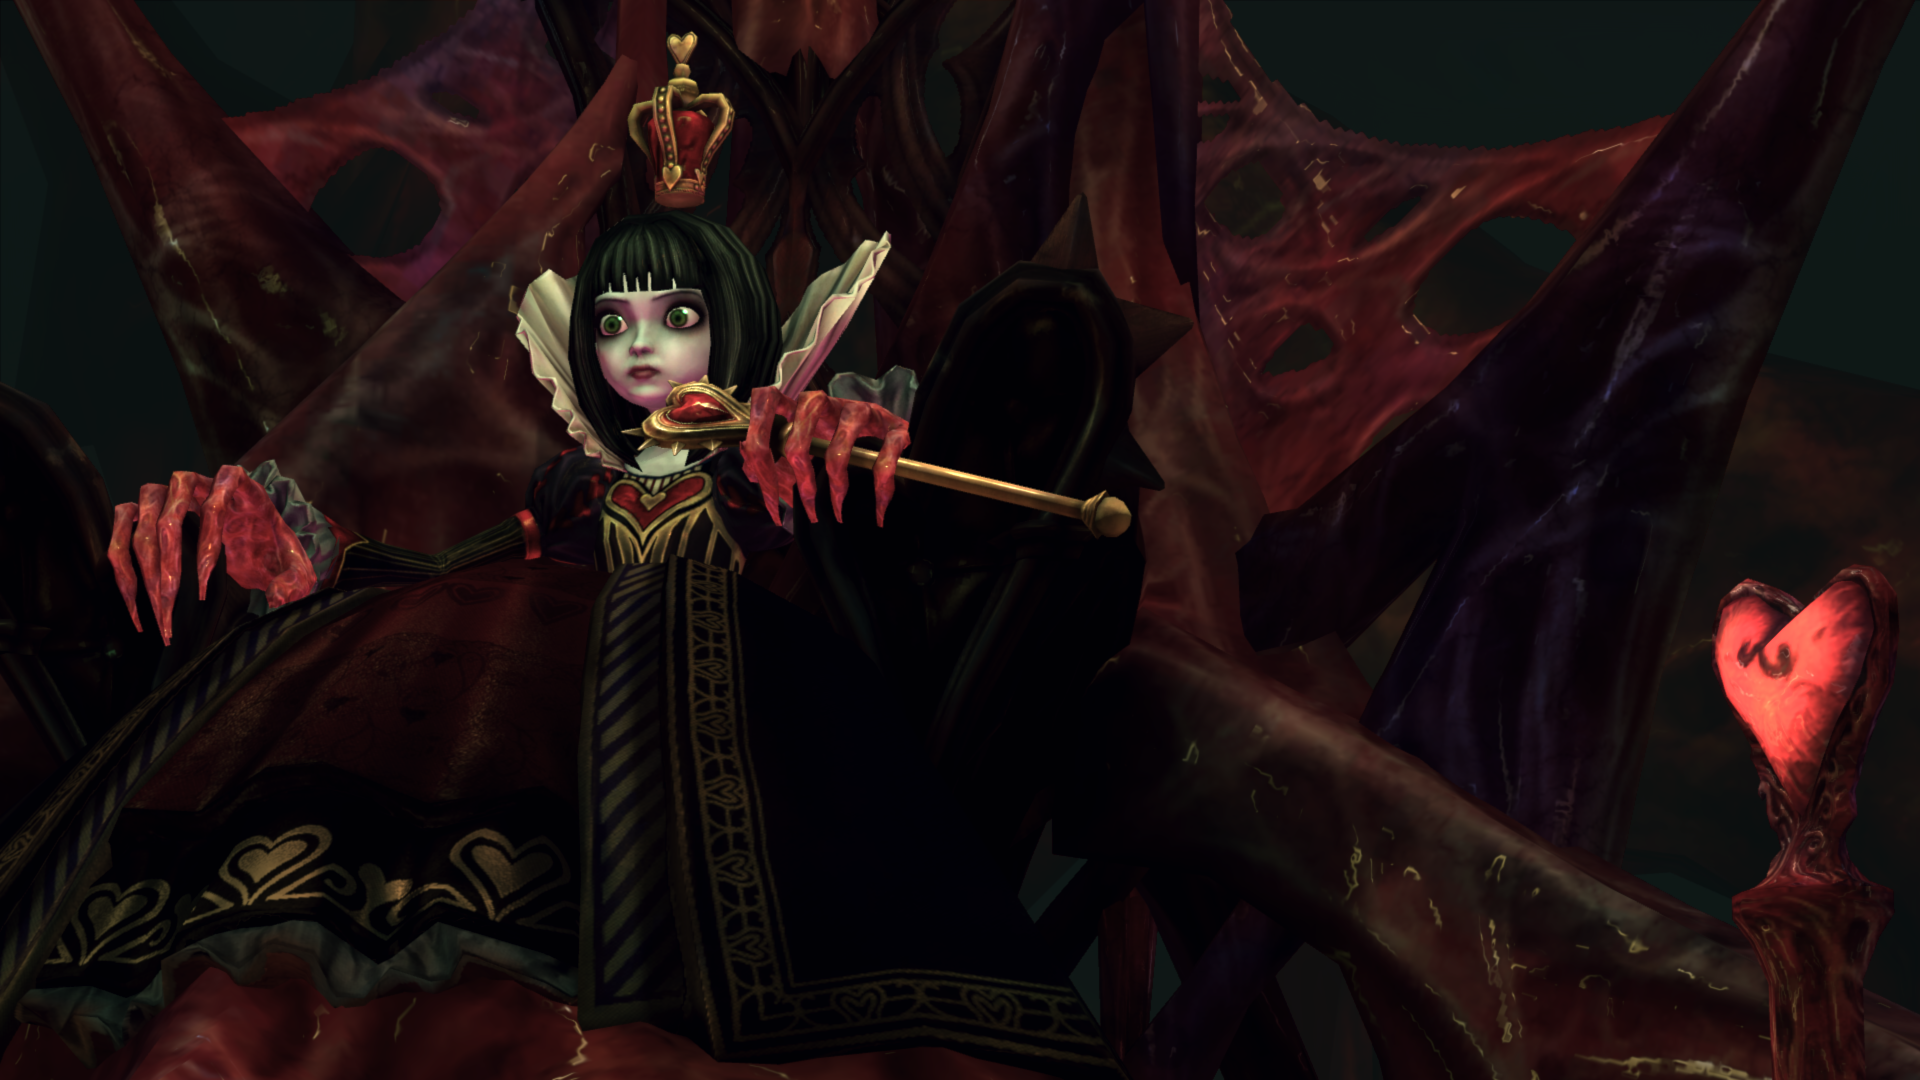 Alice Madness Returns 1080p Wallpaper 34 Red Queen of Heartspng 1920x1080